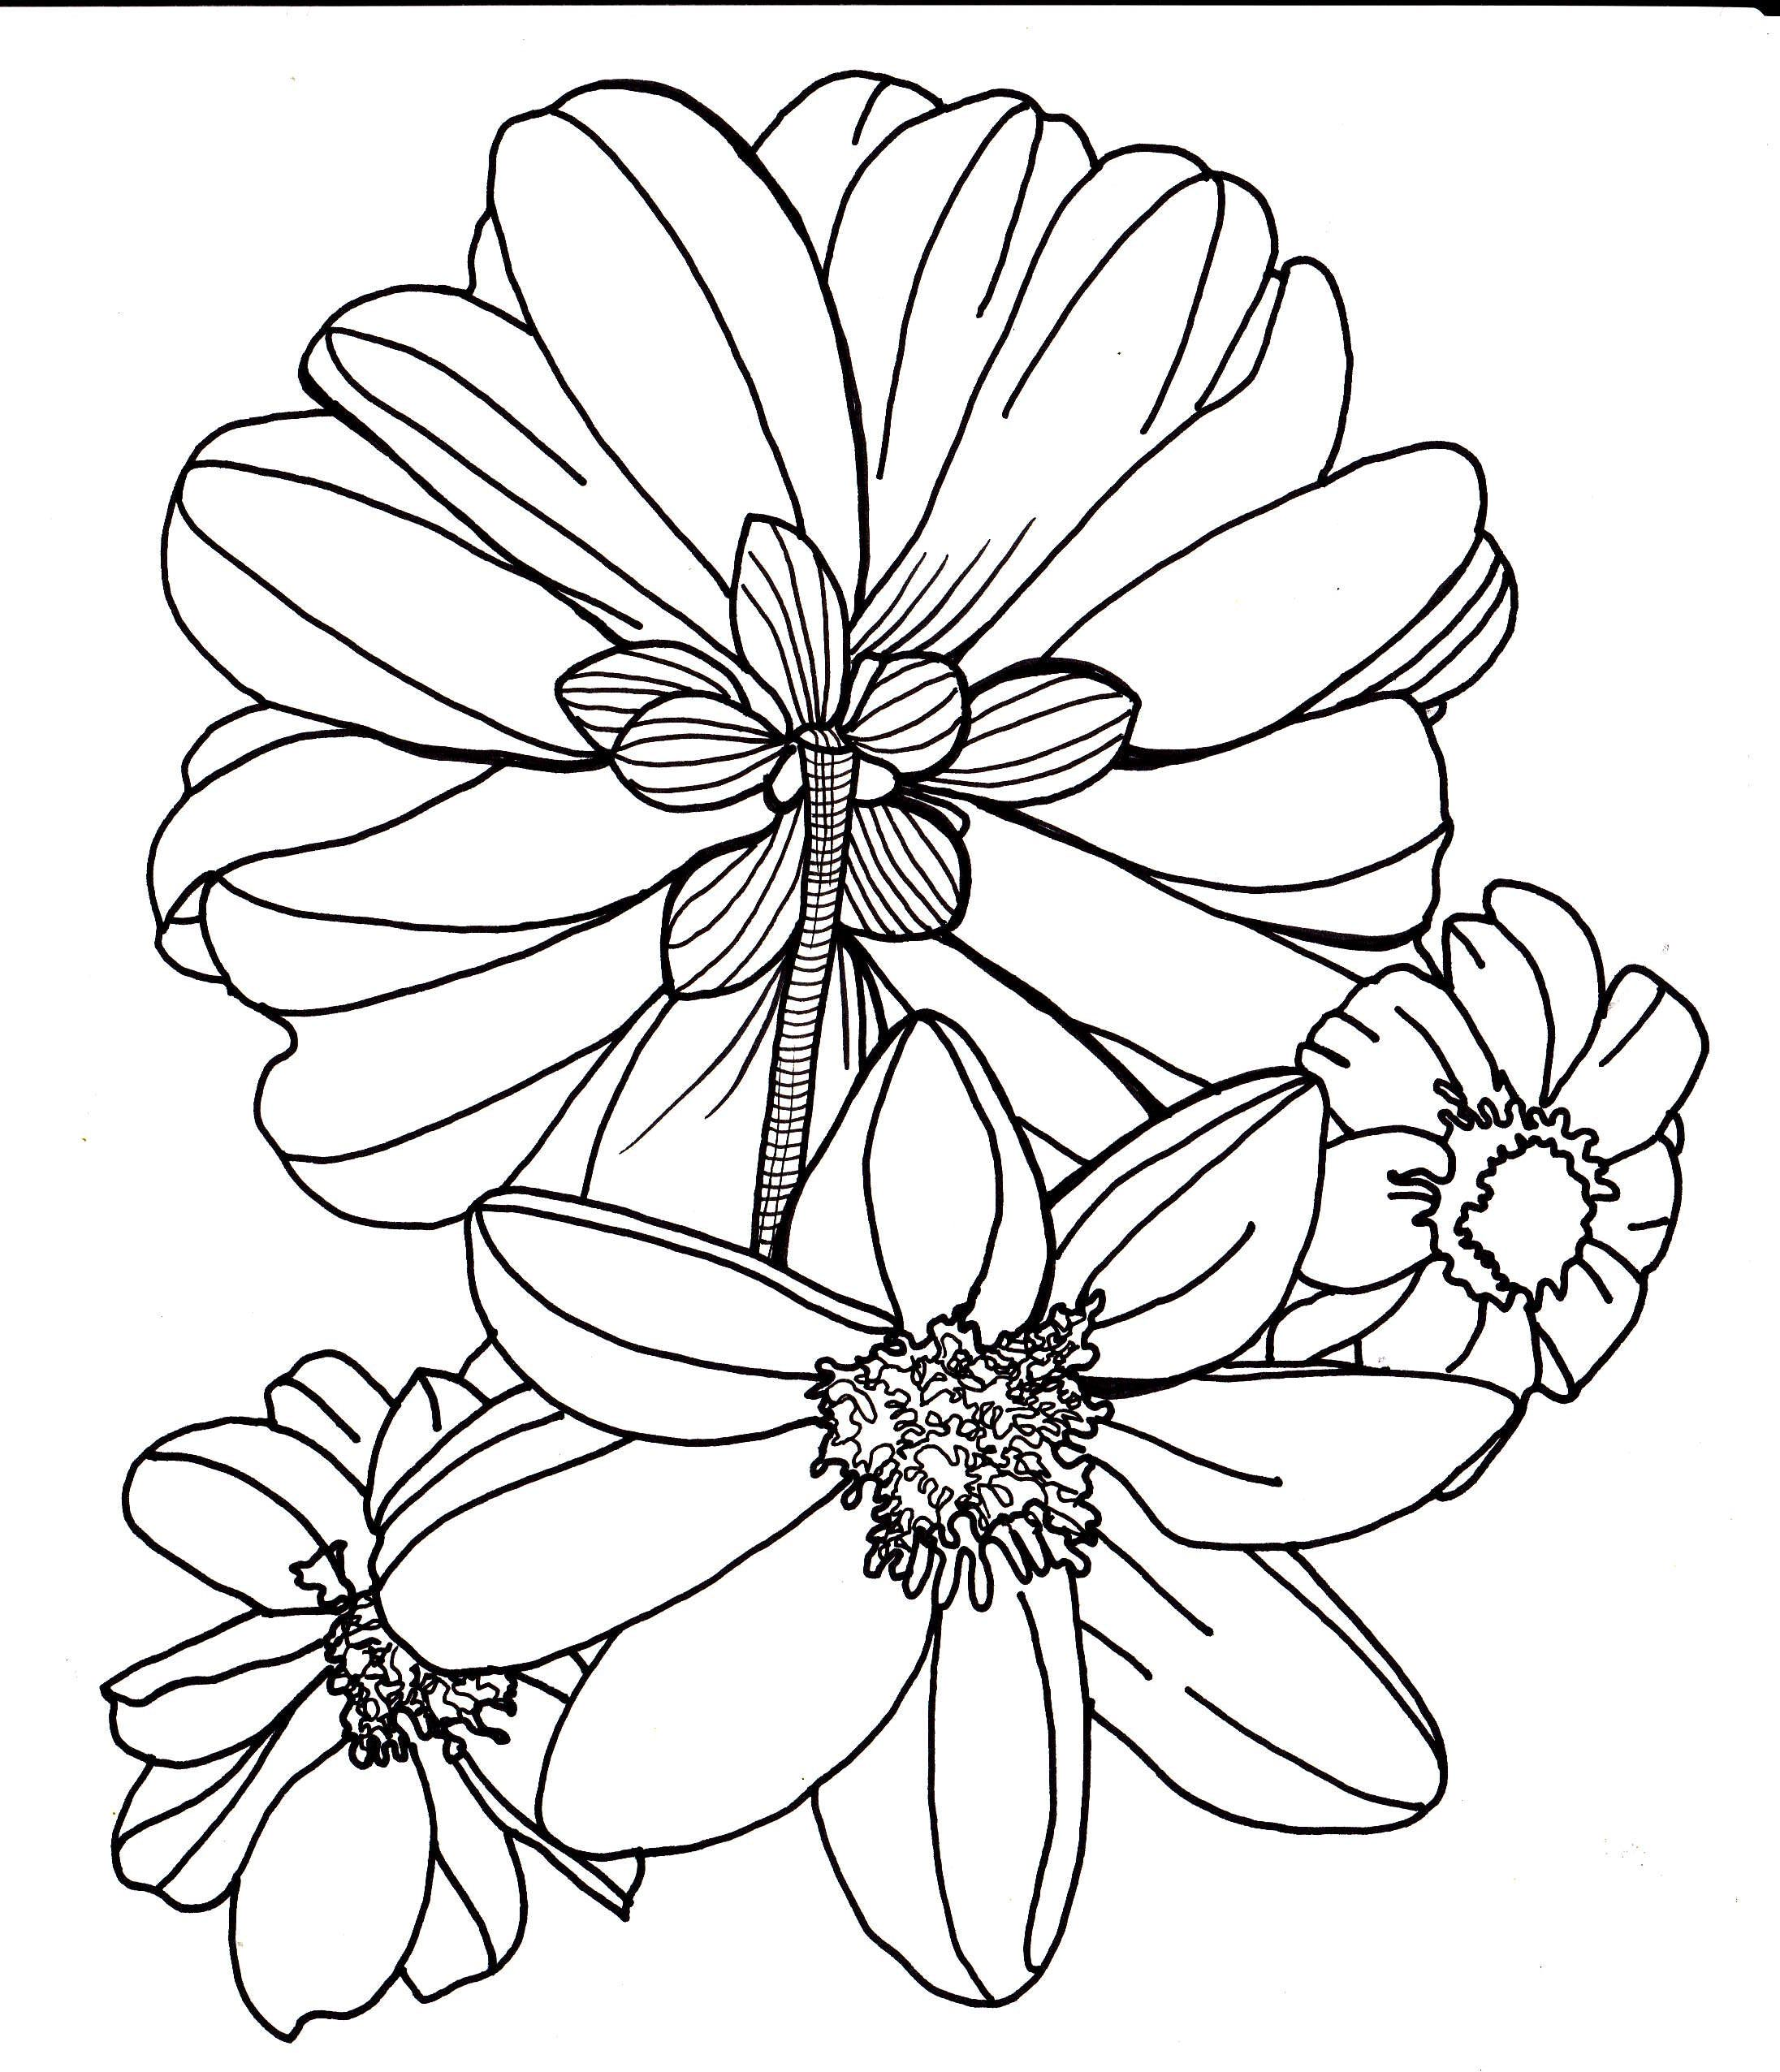 Drawn elower one flower - Pencil and in color drawn elower ...